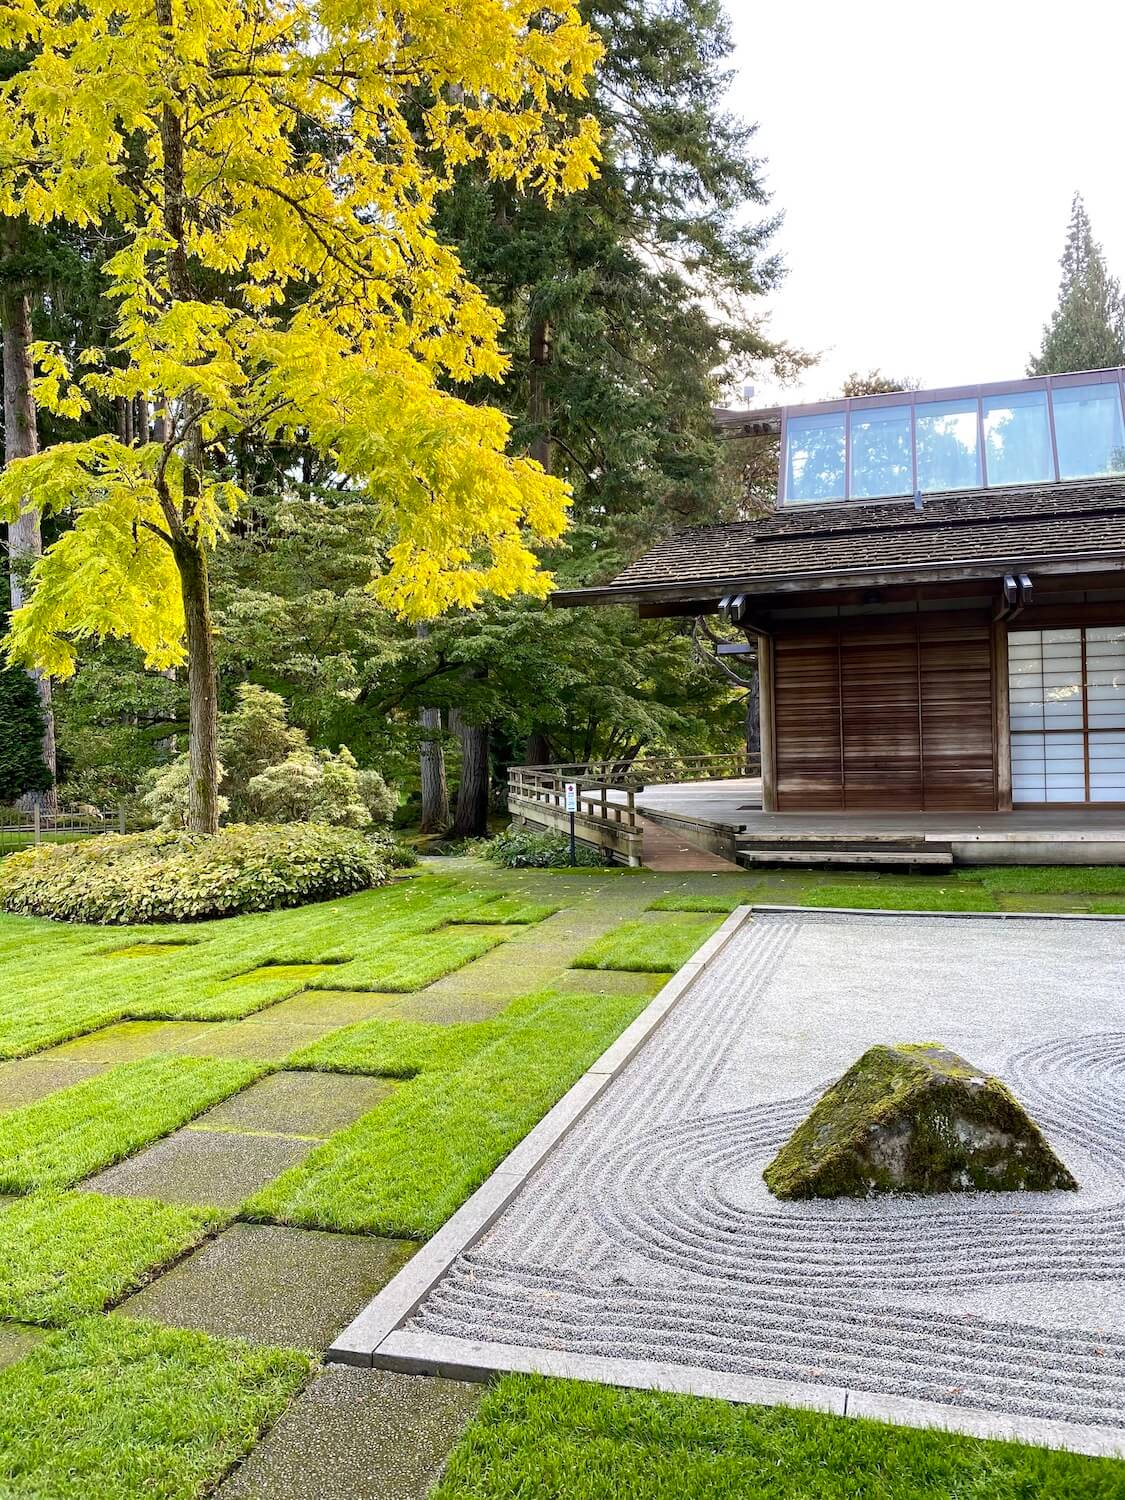 The peaceful Zen garden showcases a raked gravel plot with large rocks strategically placed next to square patches of mowed green grass while large trees with yellow leaves flow in the background next to a wood Japanese style tea house with vaulted glass ceilings.